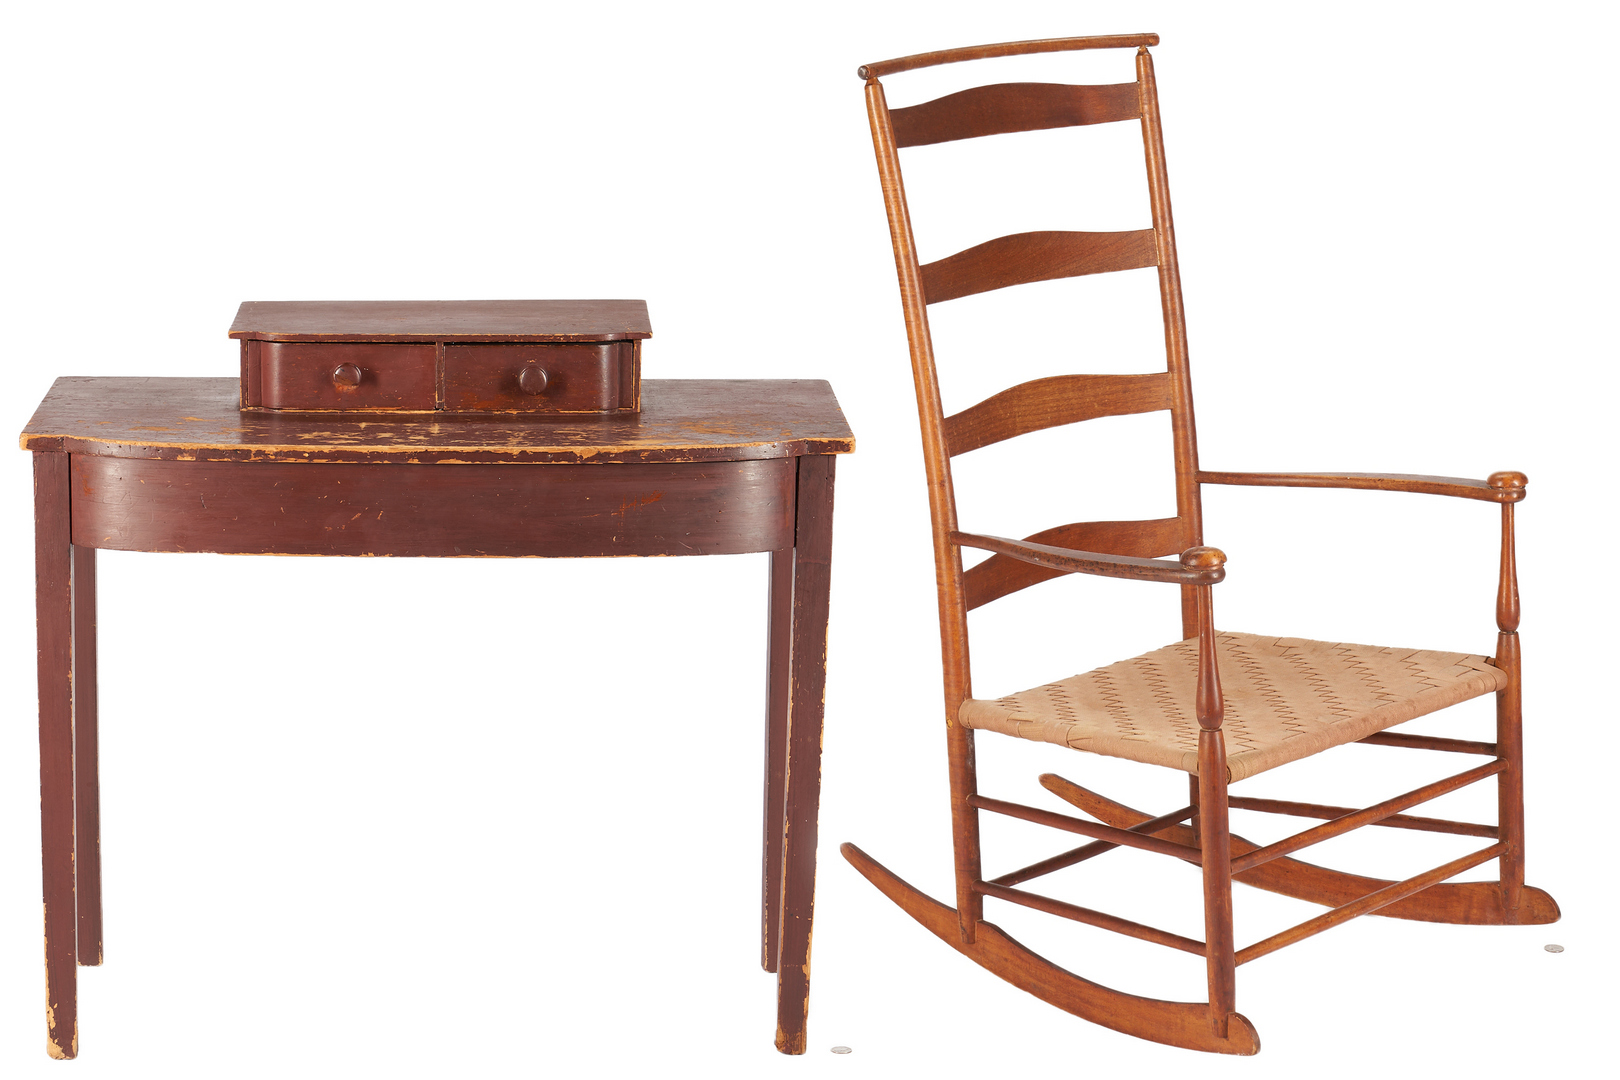 Lot 1037: Red Painted Bowfront Table & Shaker Cherry Rocking Chair